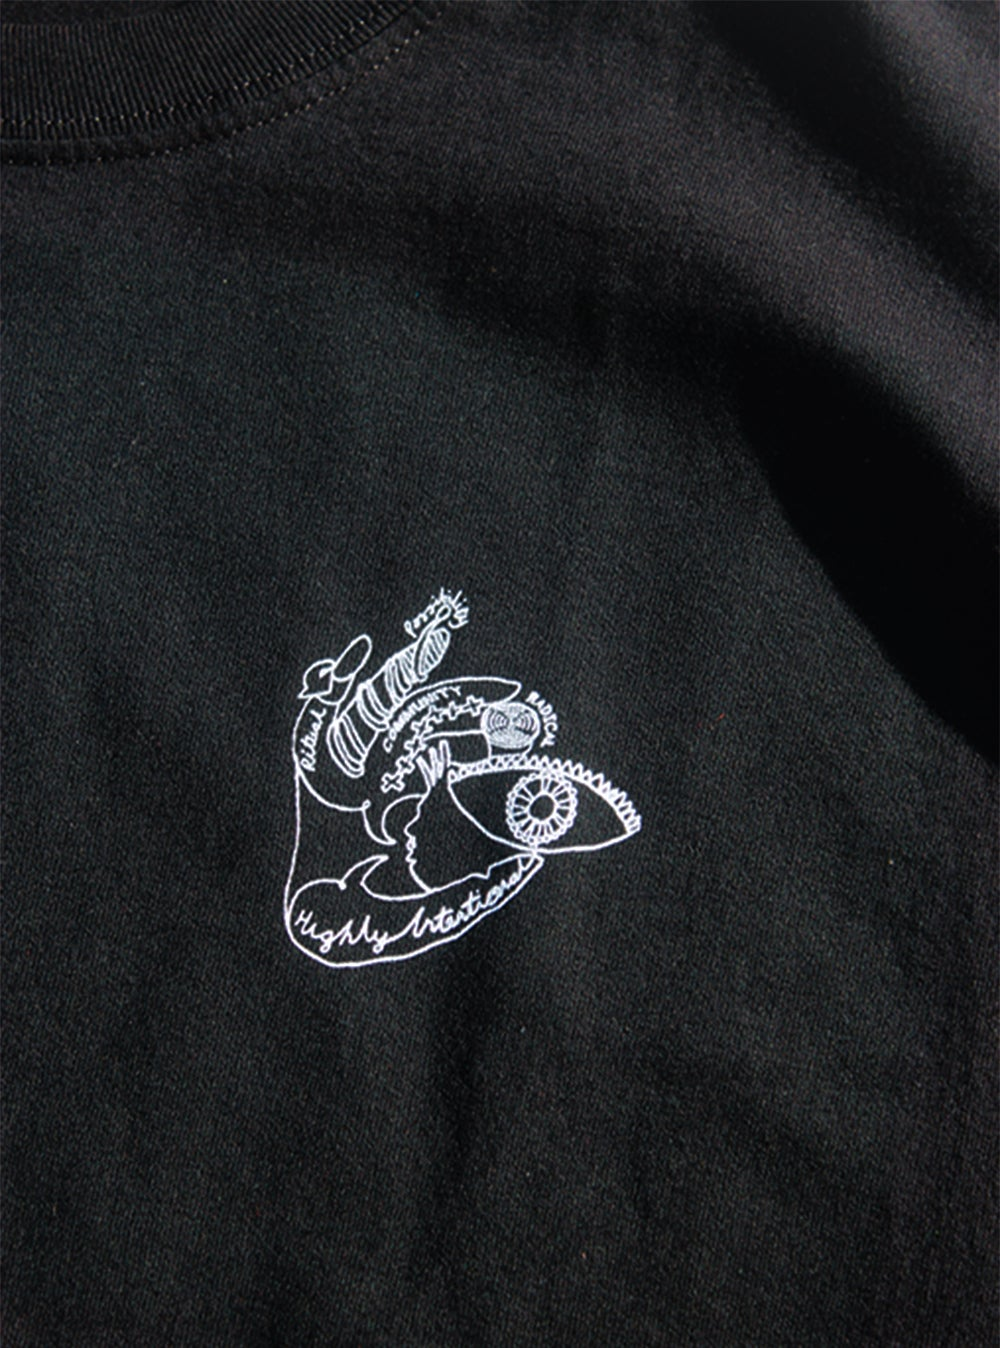 Image of RE.SOURCES. Long Sleeve.